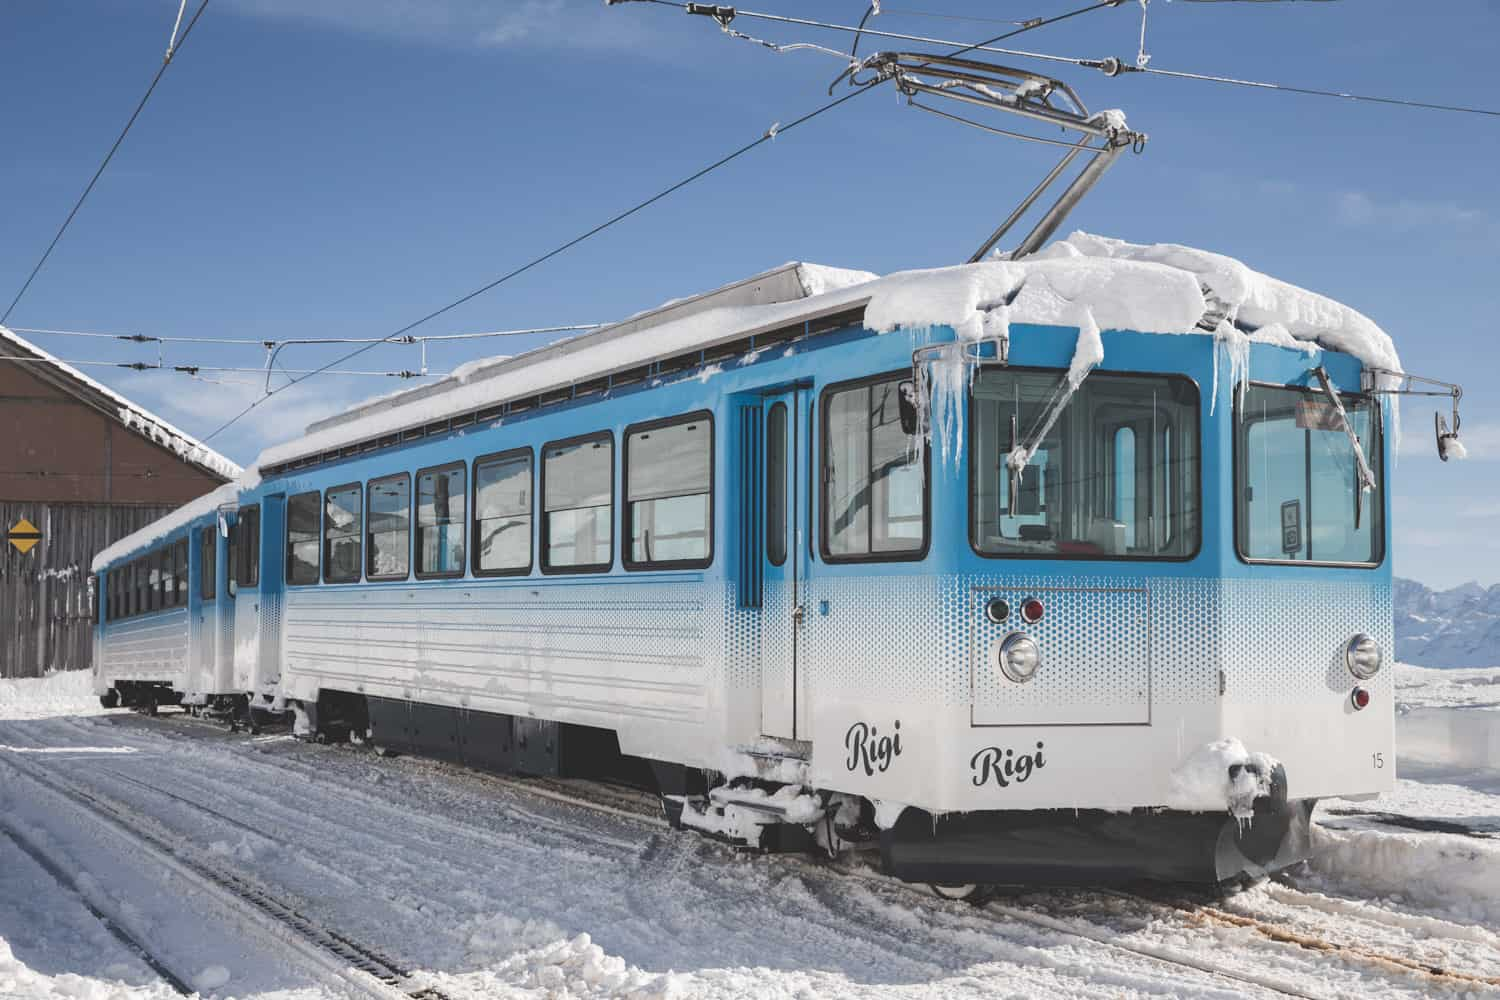 Tram frozen over on Mount Rigi in Switzerland. Rigi is a great winter destination - this was in February!